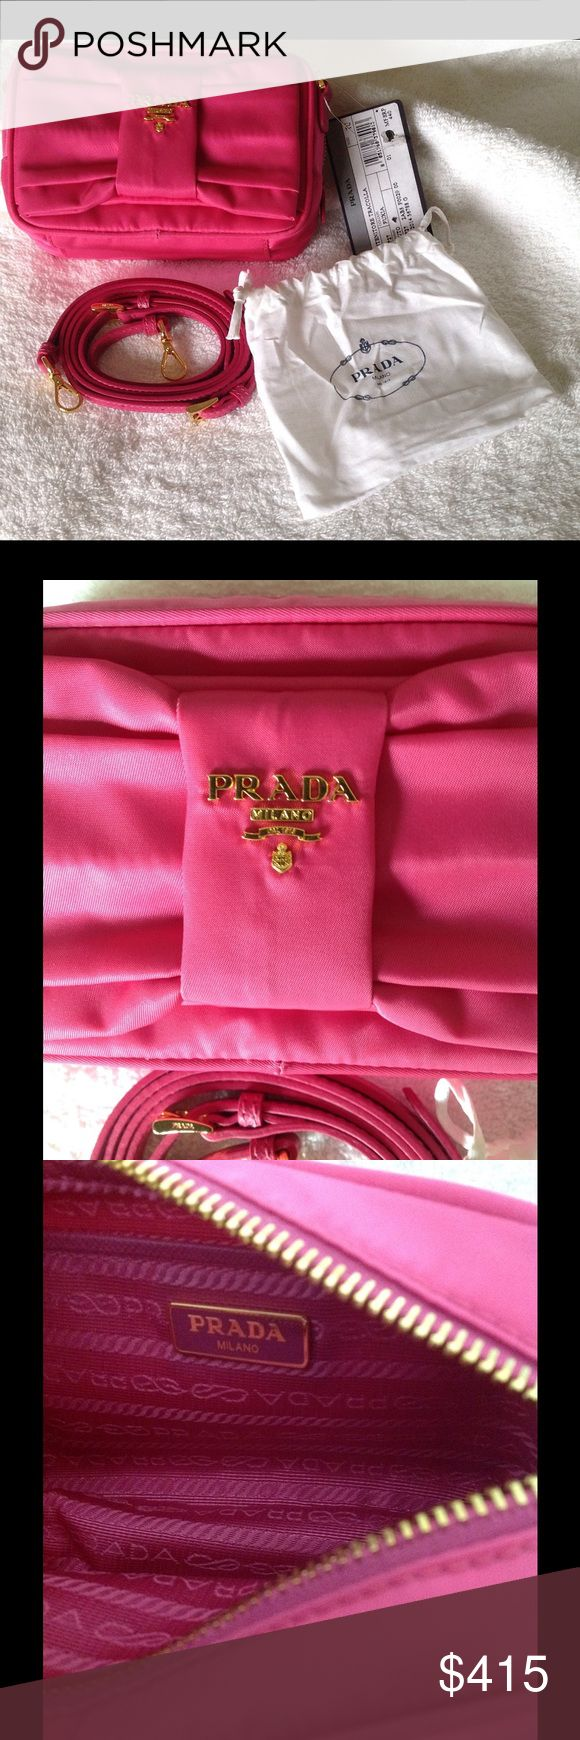 Prada Pink Nylon Bow Crossbody Camera Bag New with tag, but no box or hard plastic authenticity card. Soft card is attached. Leather strap is removable. Measures approximately 6 x 4 x 2.  Authentic. Offers welcome. NO TRADES. ~John 11:25-26~☀️ Prada Bags Crossbody Bags